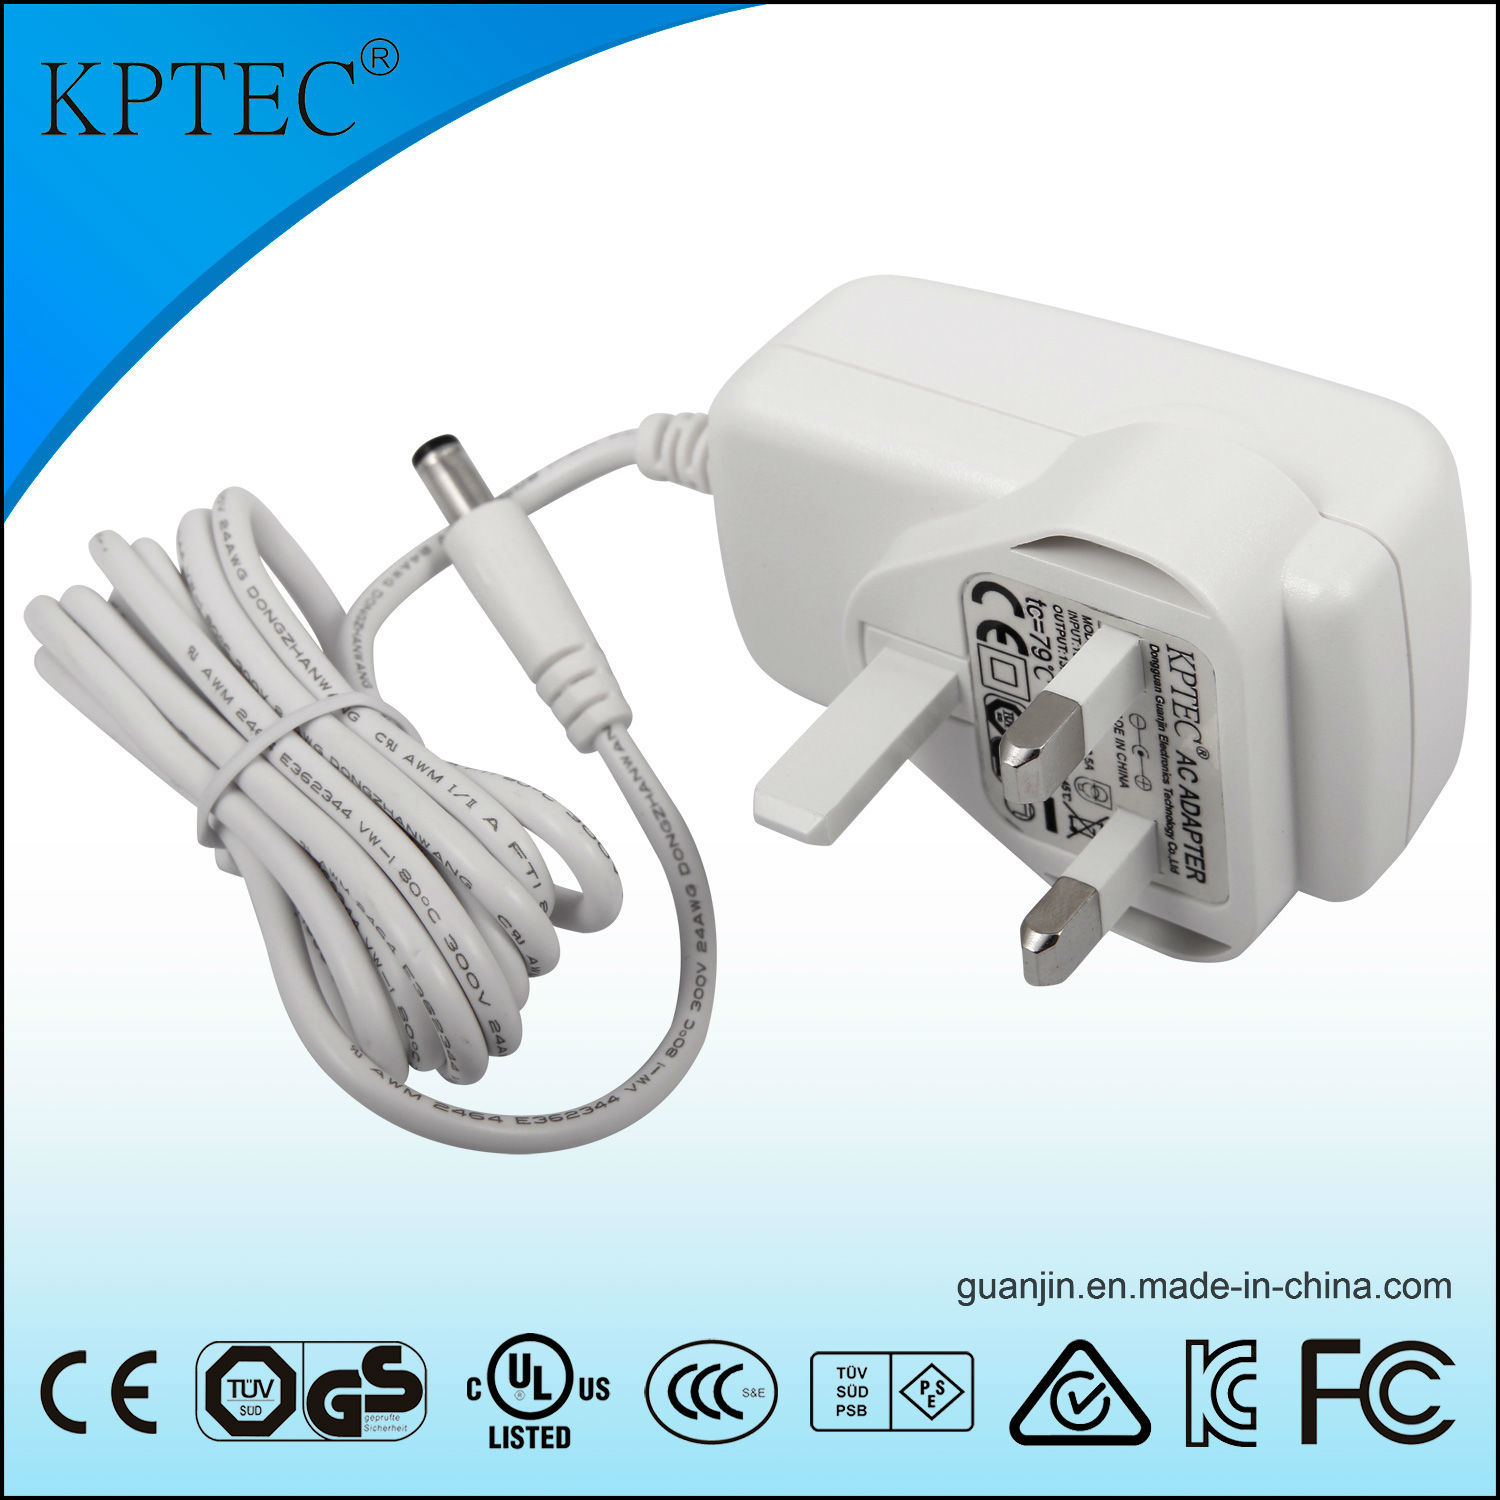 15V/1A/15W AC/DC Switching Power Adapter Supply with Ce Certificate